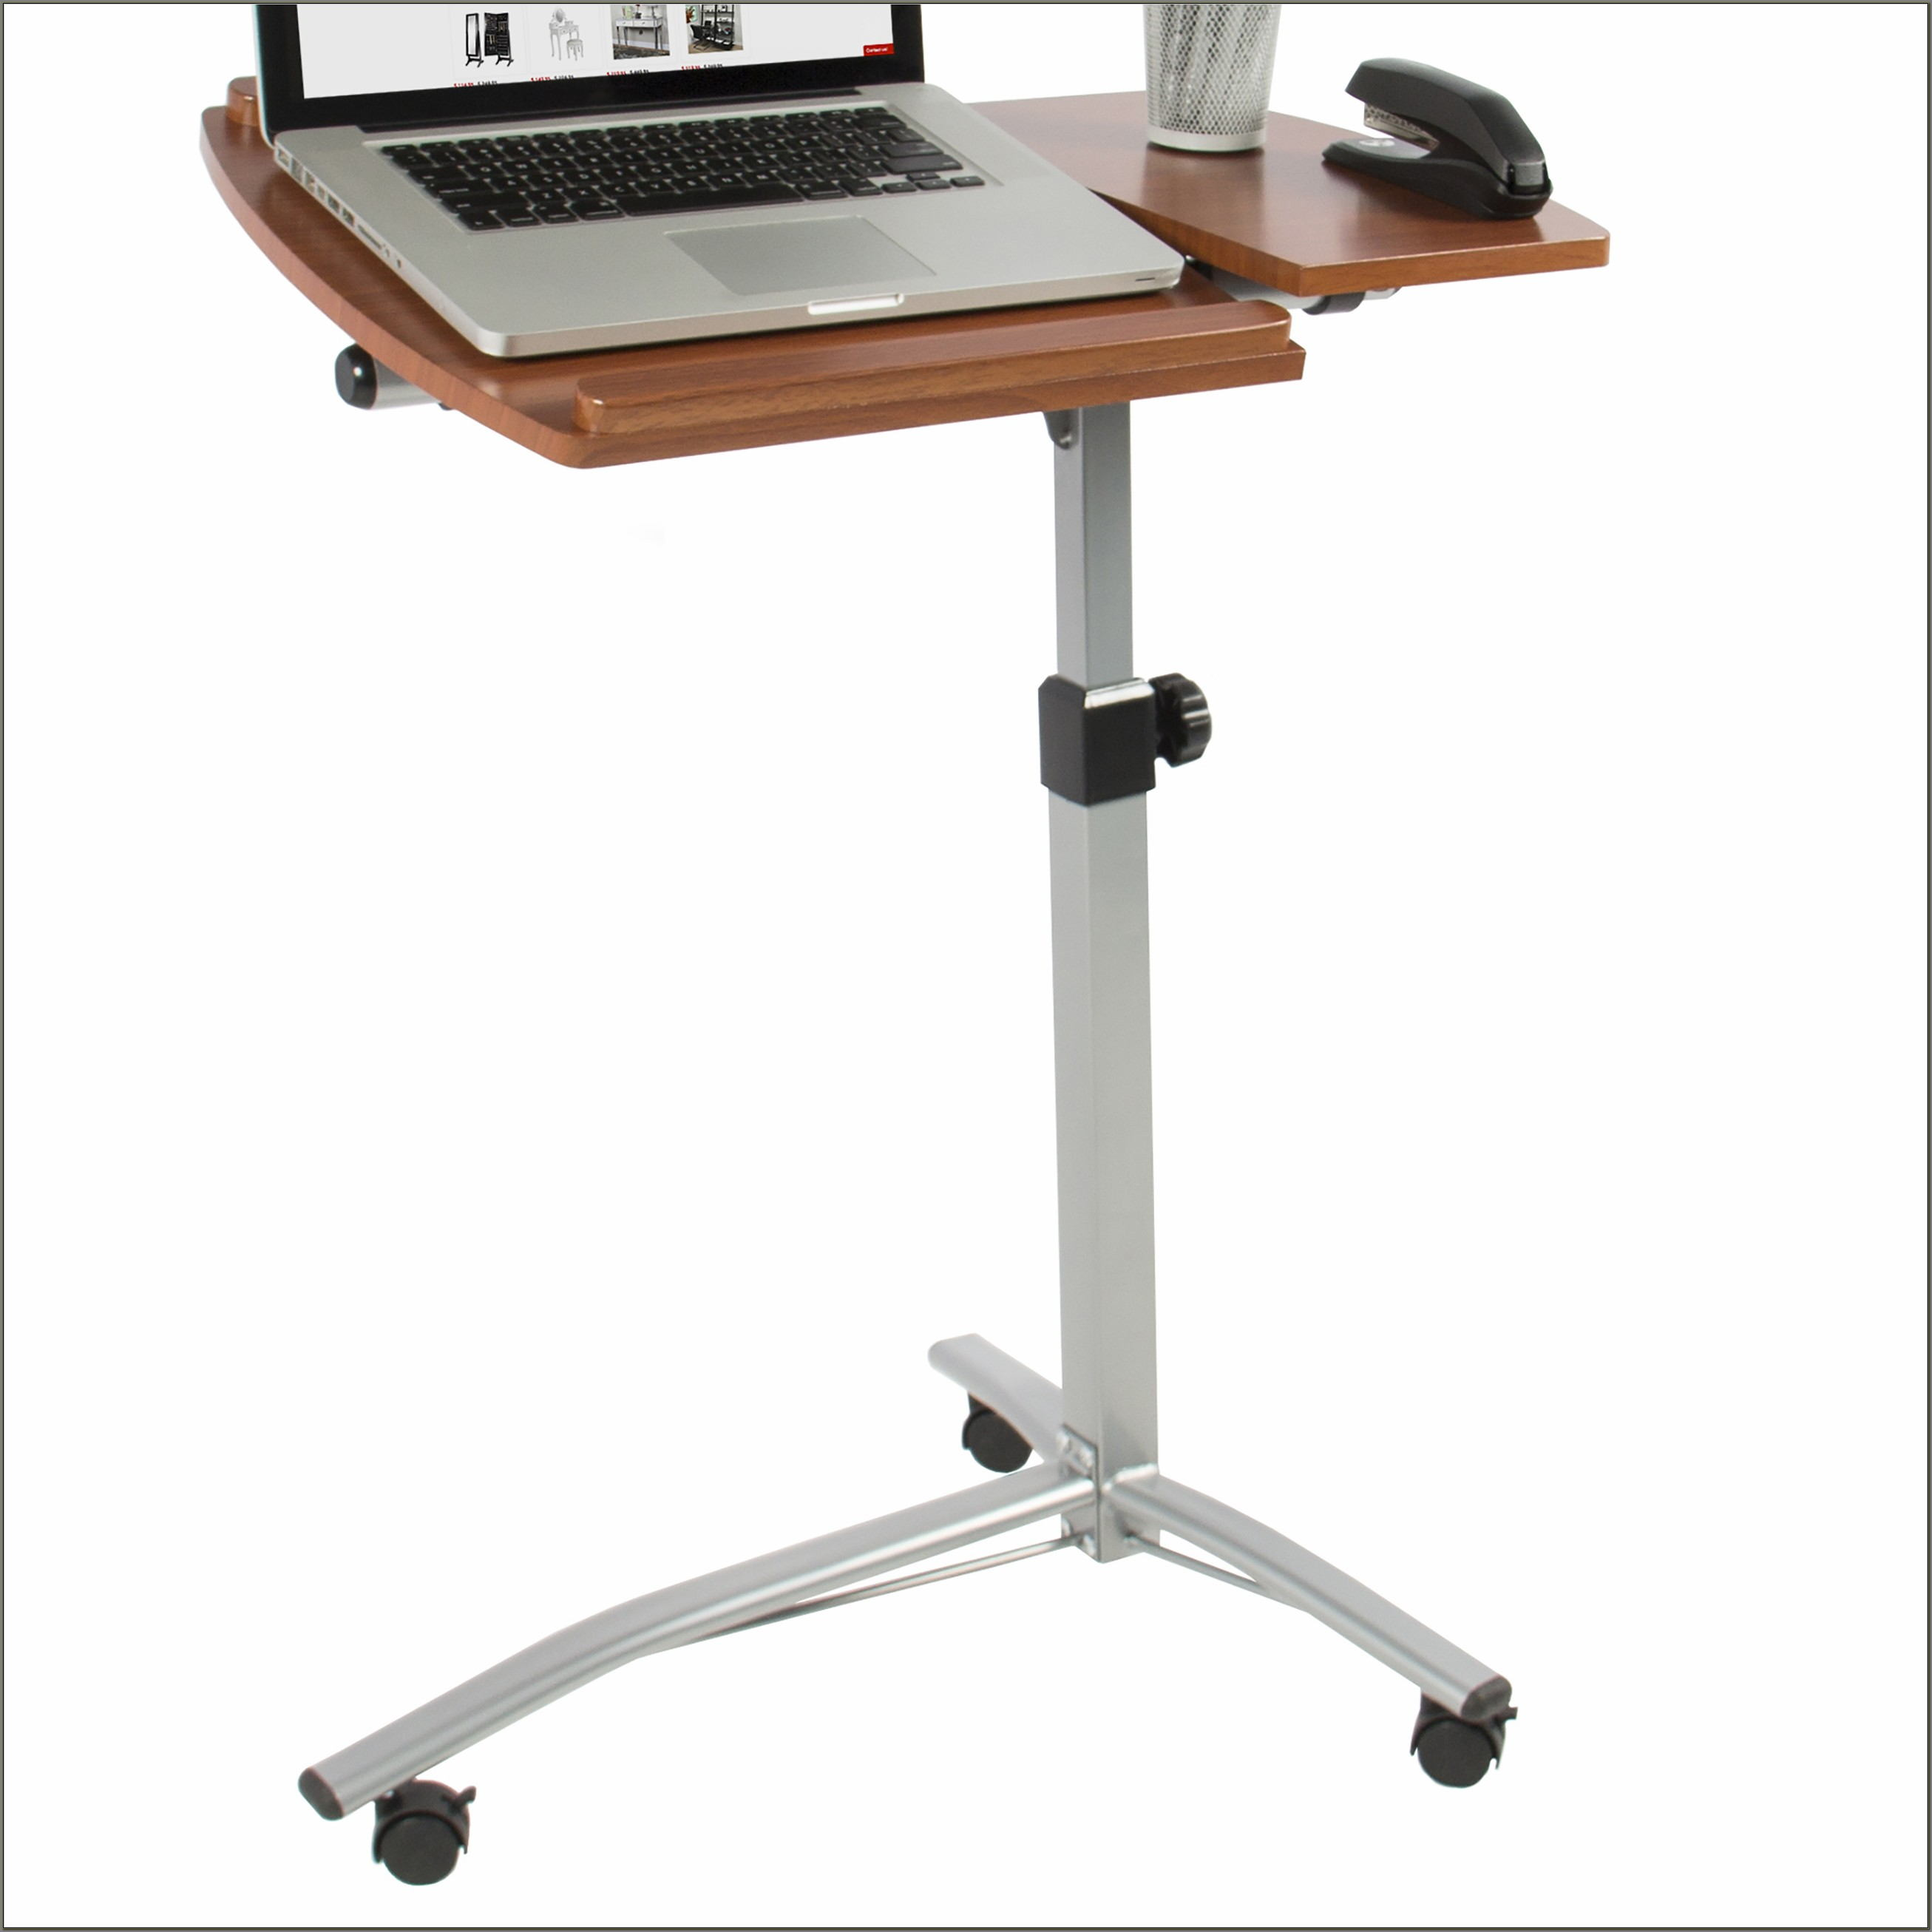 Adjustable Mobile Rolling Laptop Desk